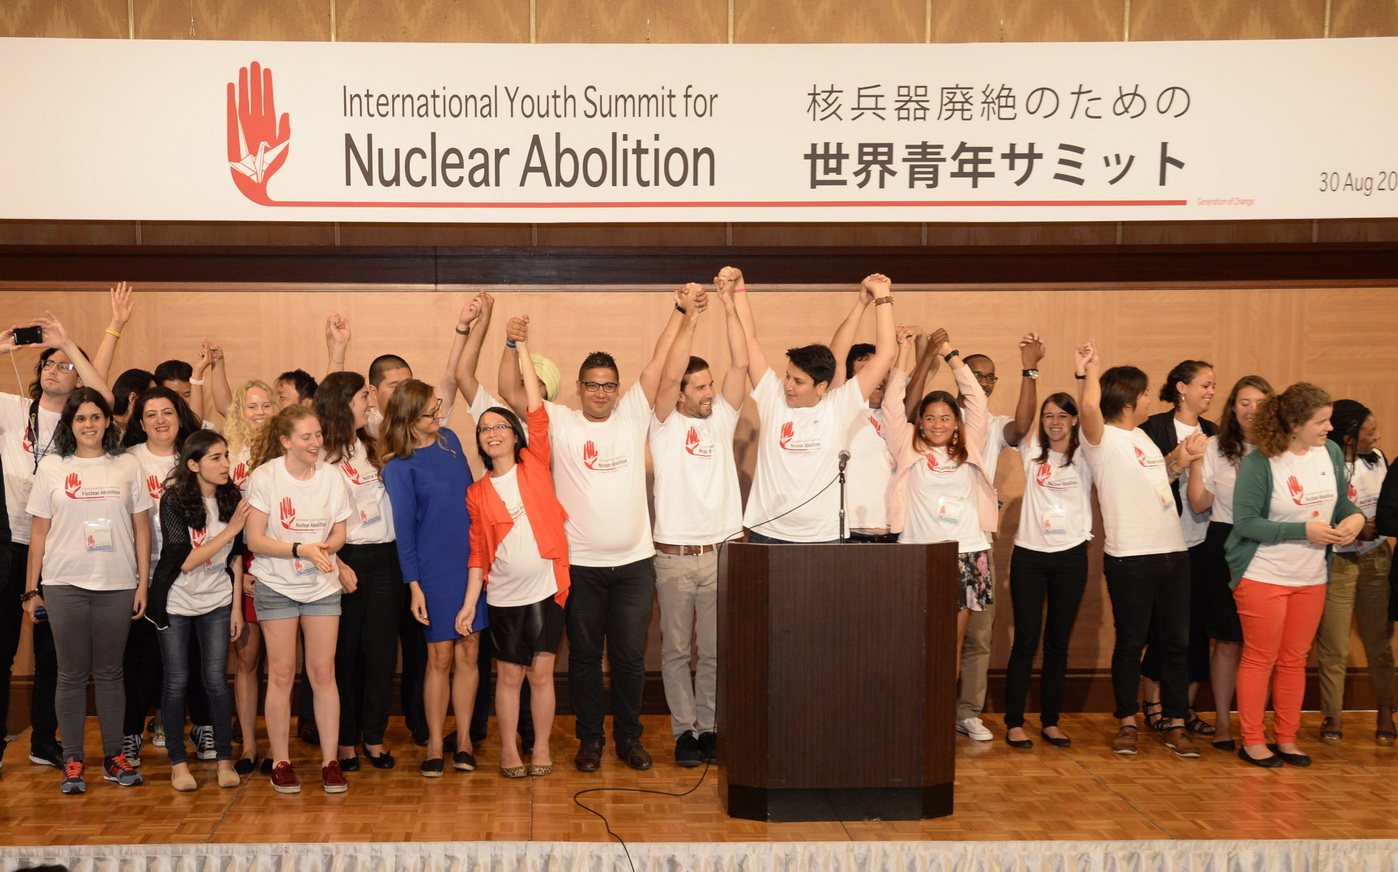 InternationalYouthSummitfor NuclearAbolition_Ending.jpg